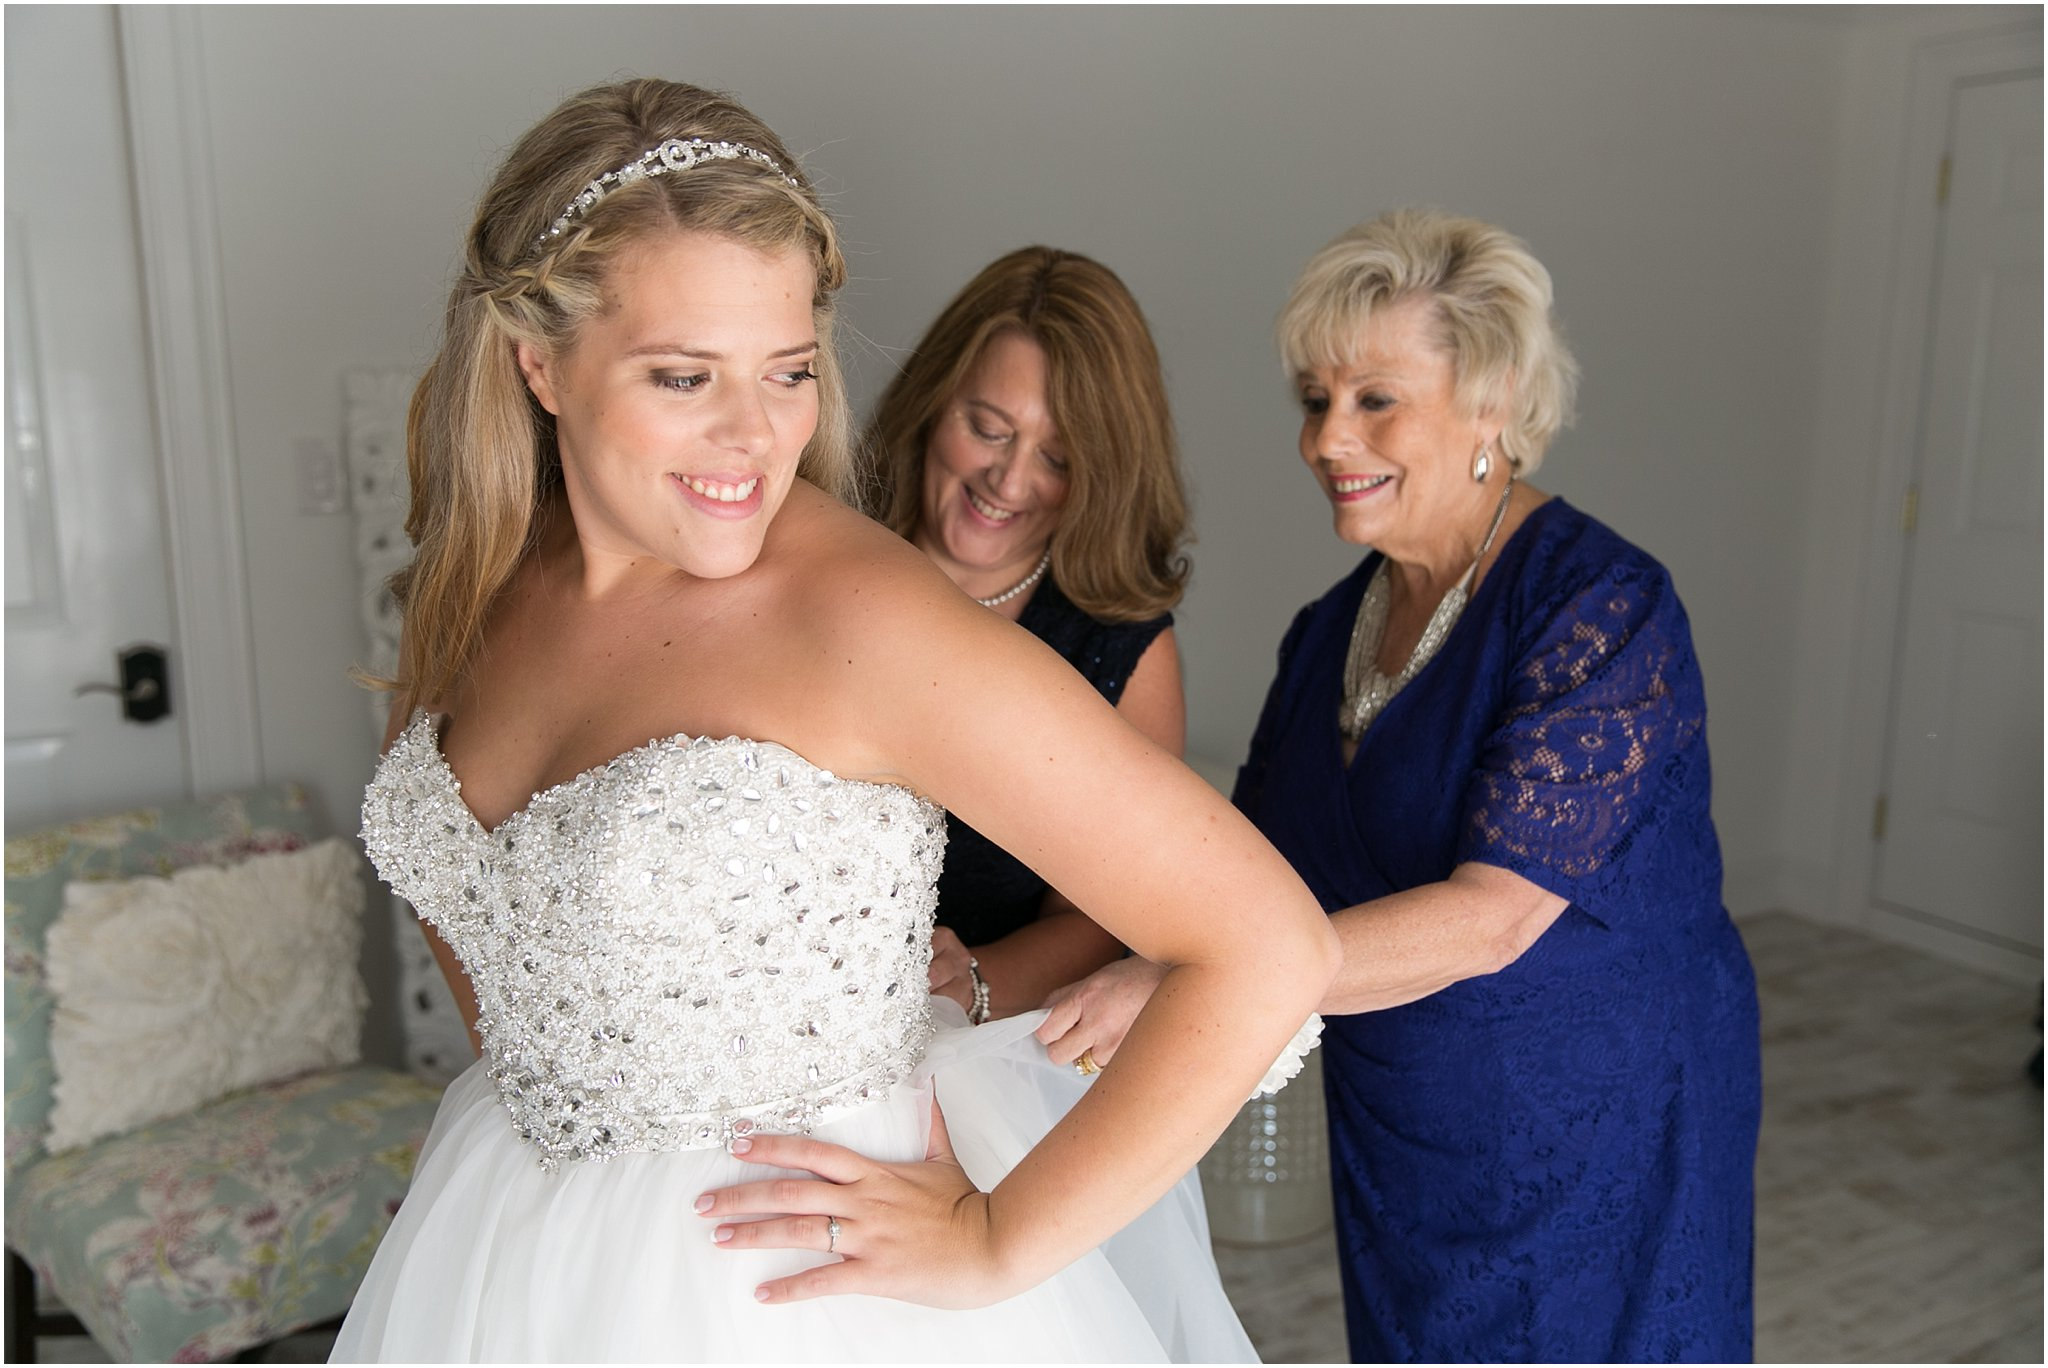 jessica_ryan_photography_wedding_hampton_roads_virginia_virginia_beach_weddings_0602